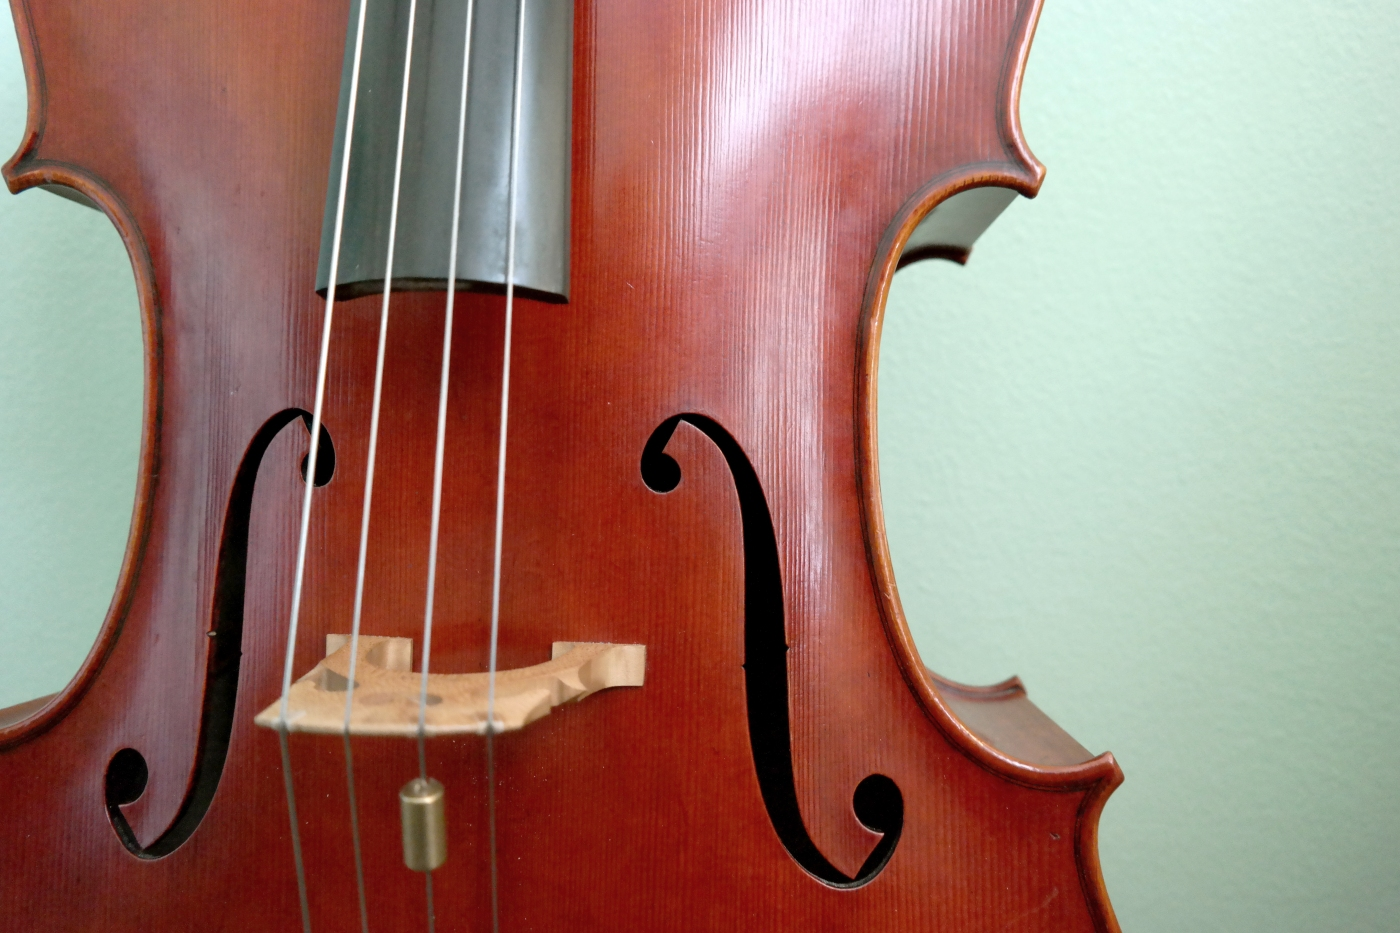 Cello close-up